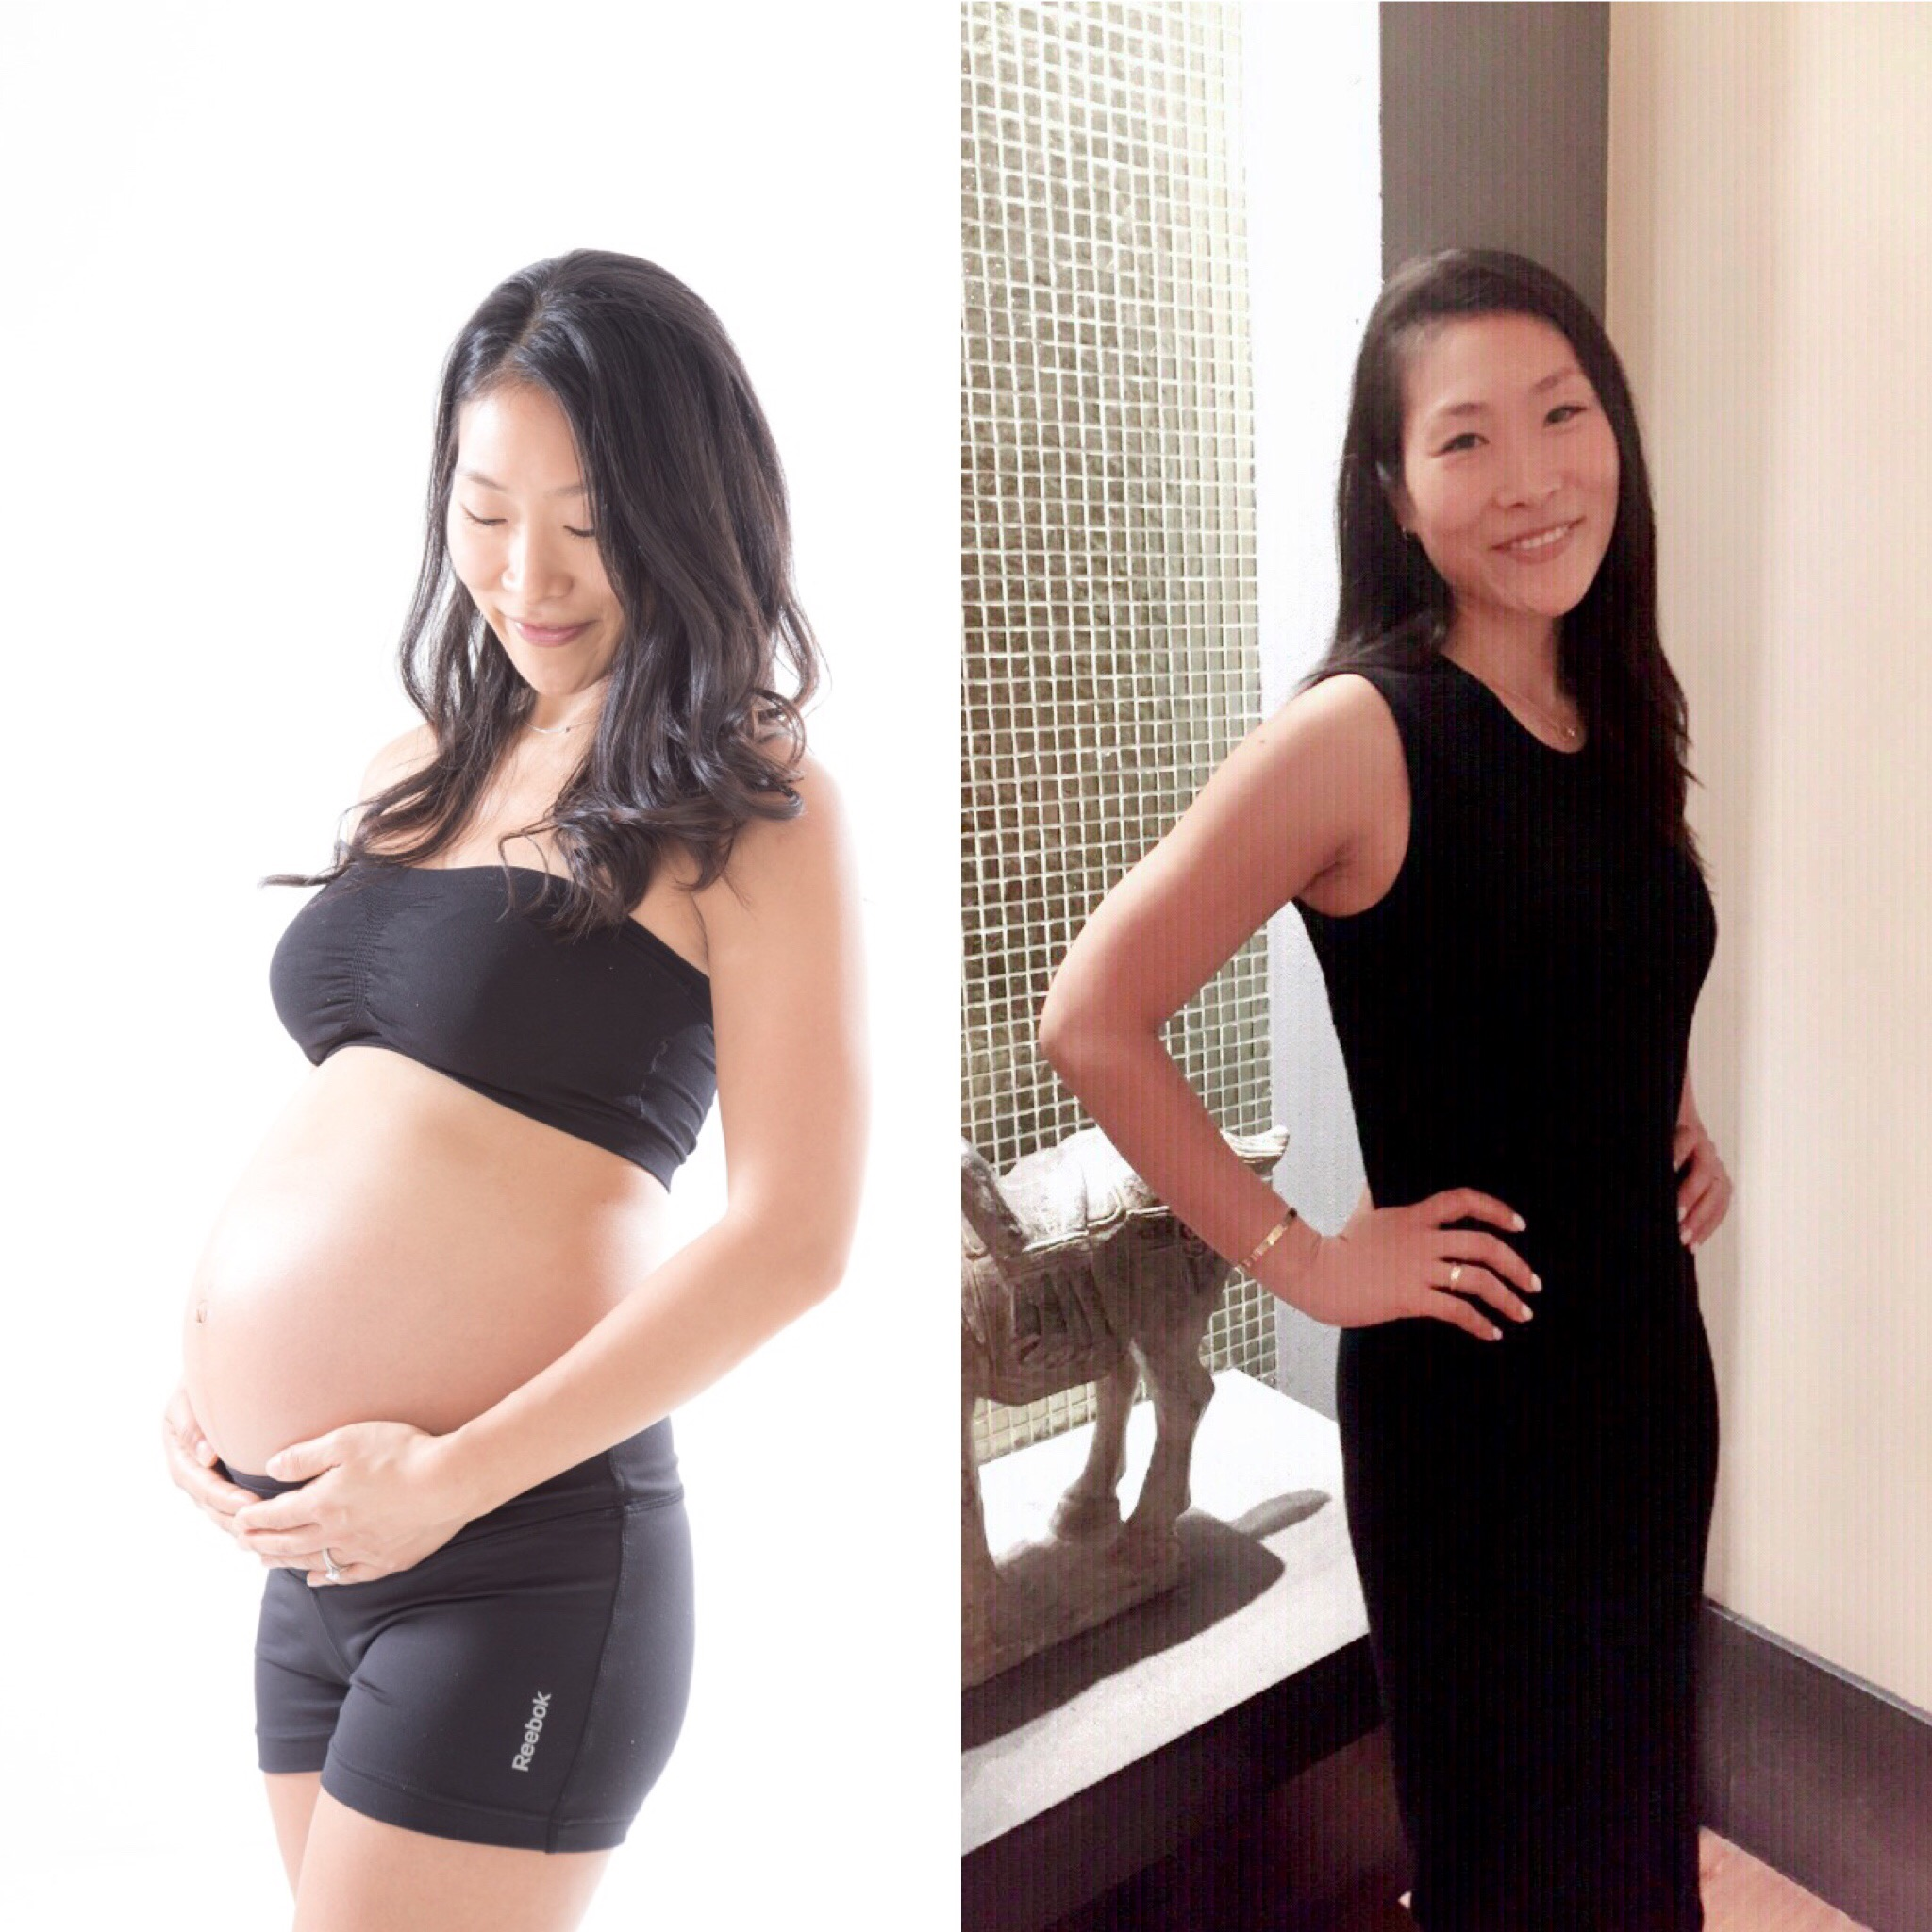 before/after - On the left, Ginny is 33 weeks pregnant. On the right, Ginny was 3 months post delivery. Total Weight Gain during pregnancy was 20lbs